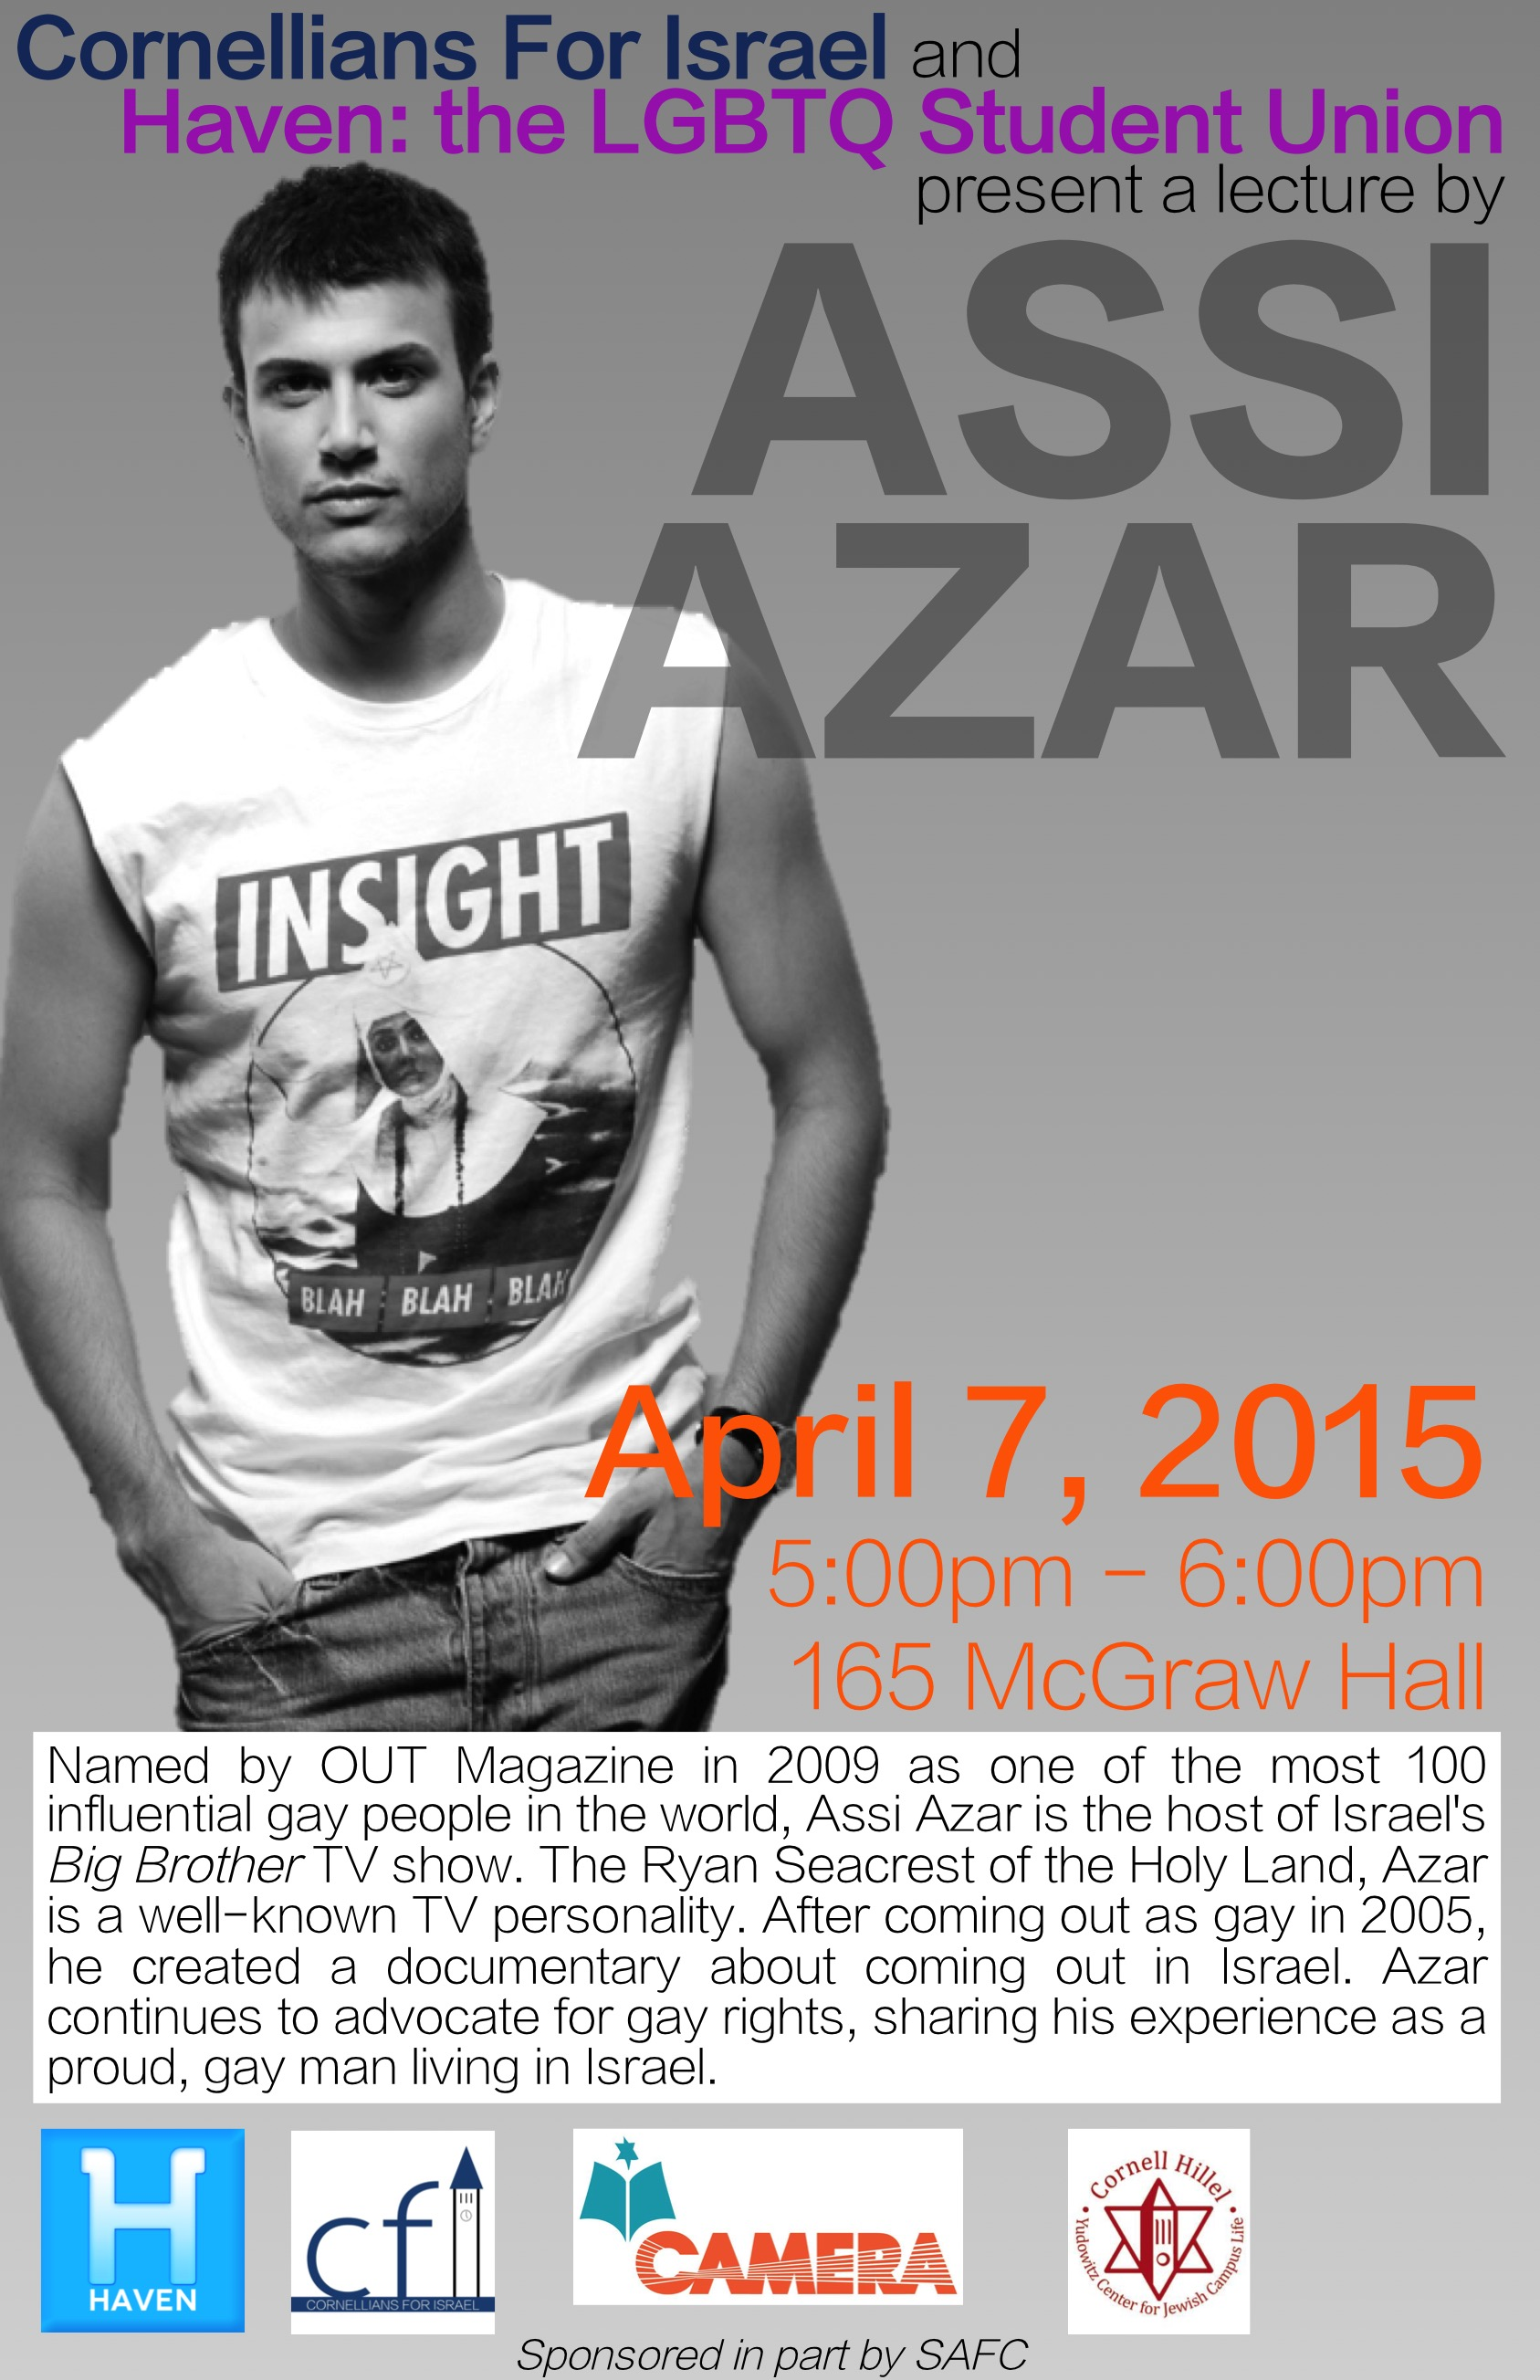 ASSI AZAR: Israeli TV personality and gay rights advocate